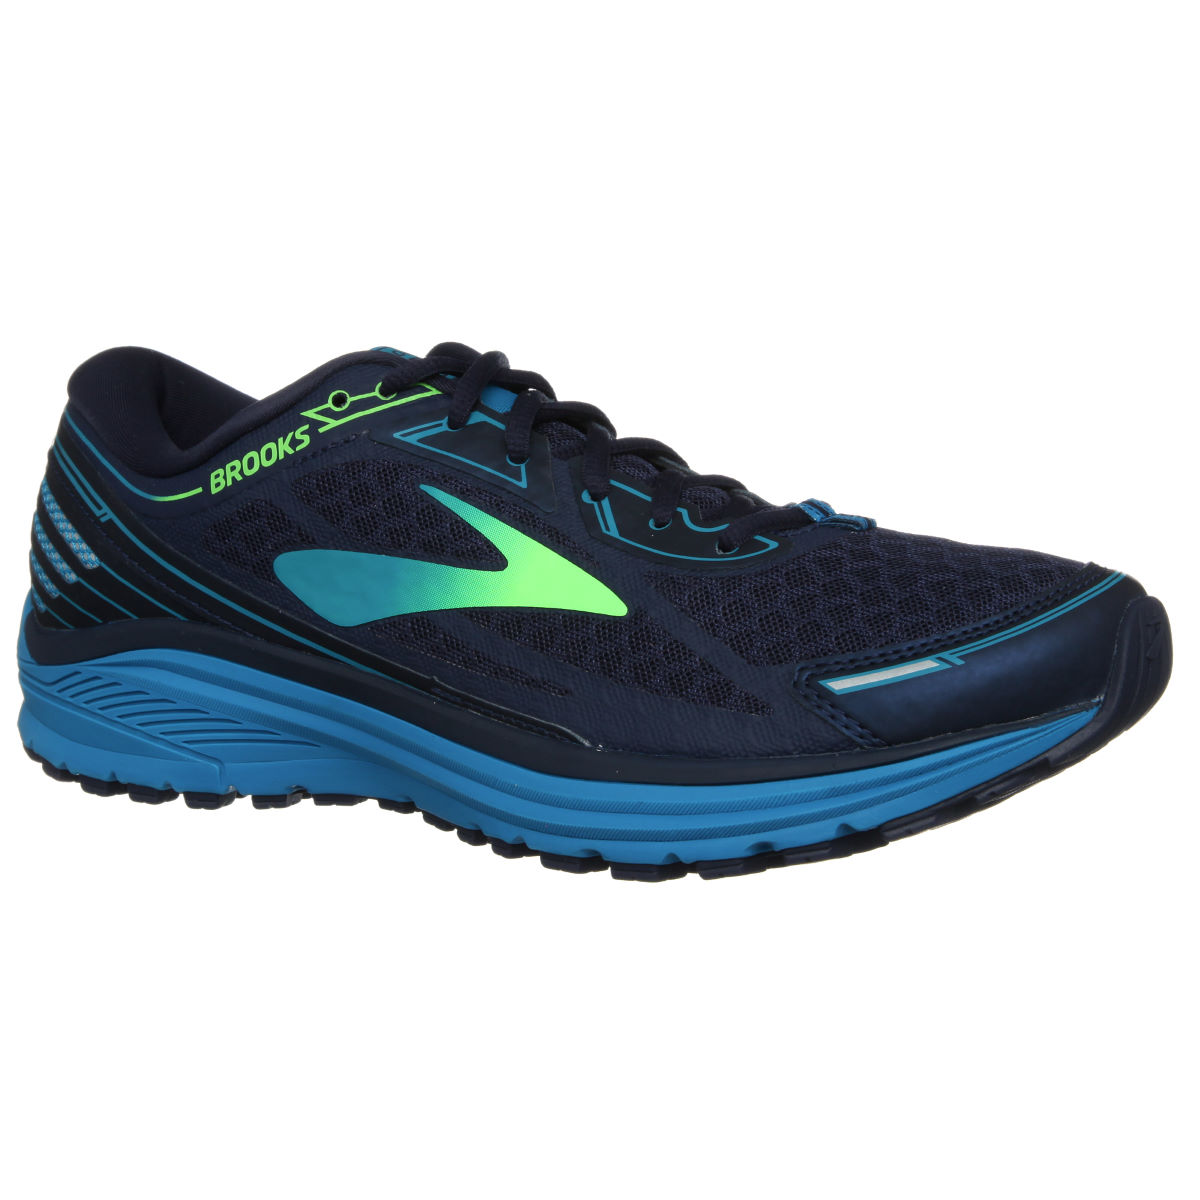 Chaussures Brooks Aduro 5 - UK 7 Navy/Green Chaussures de running